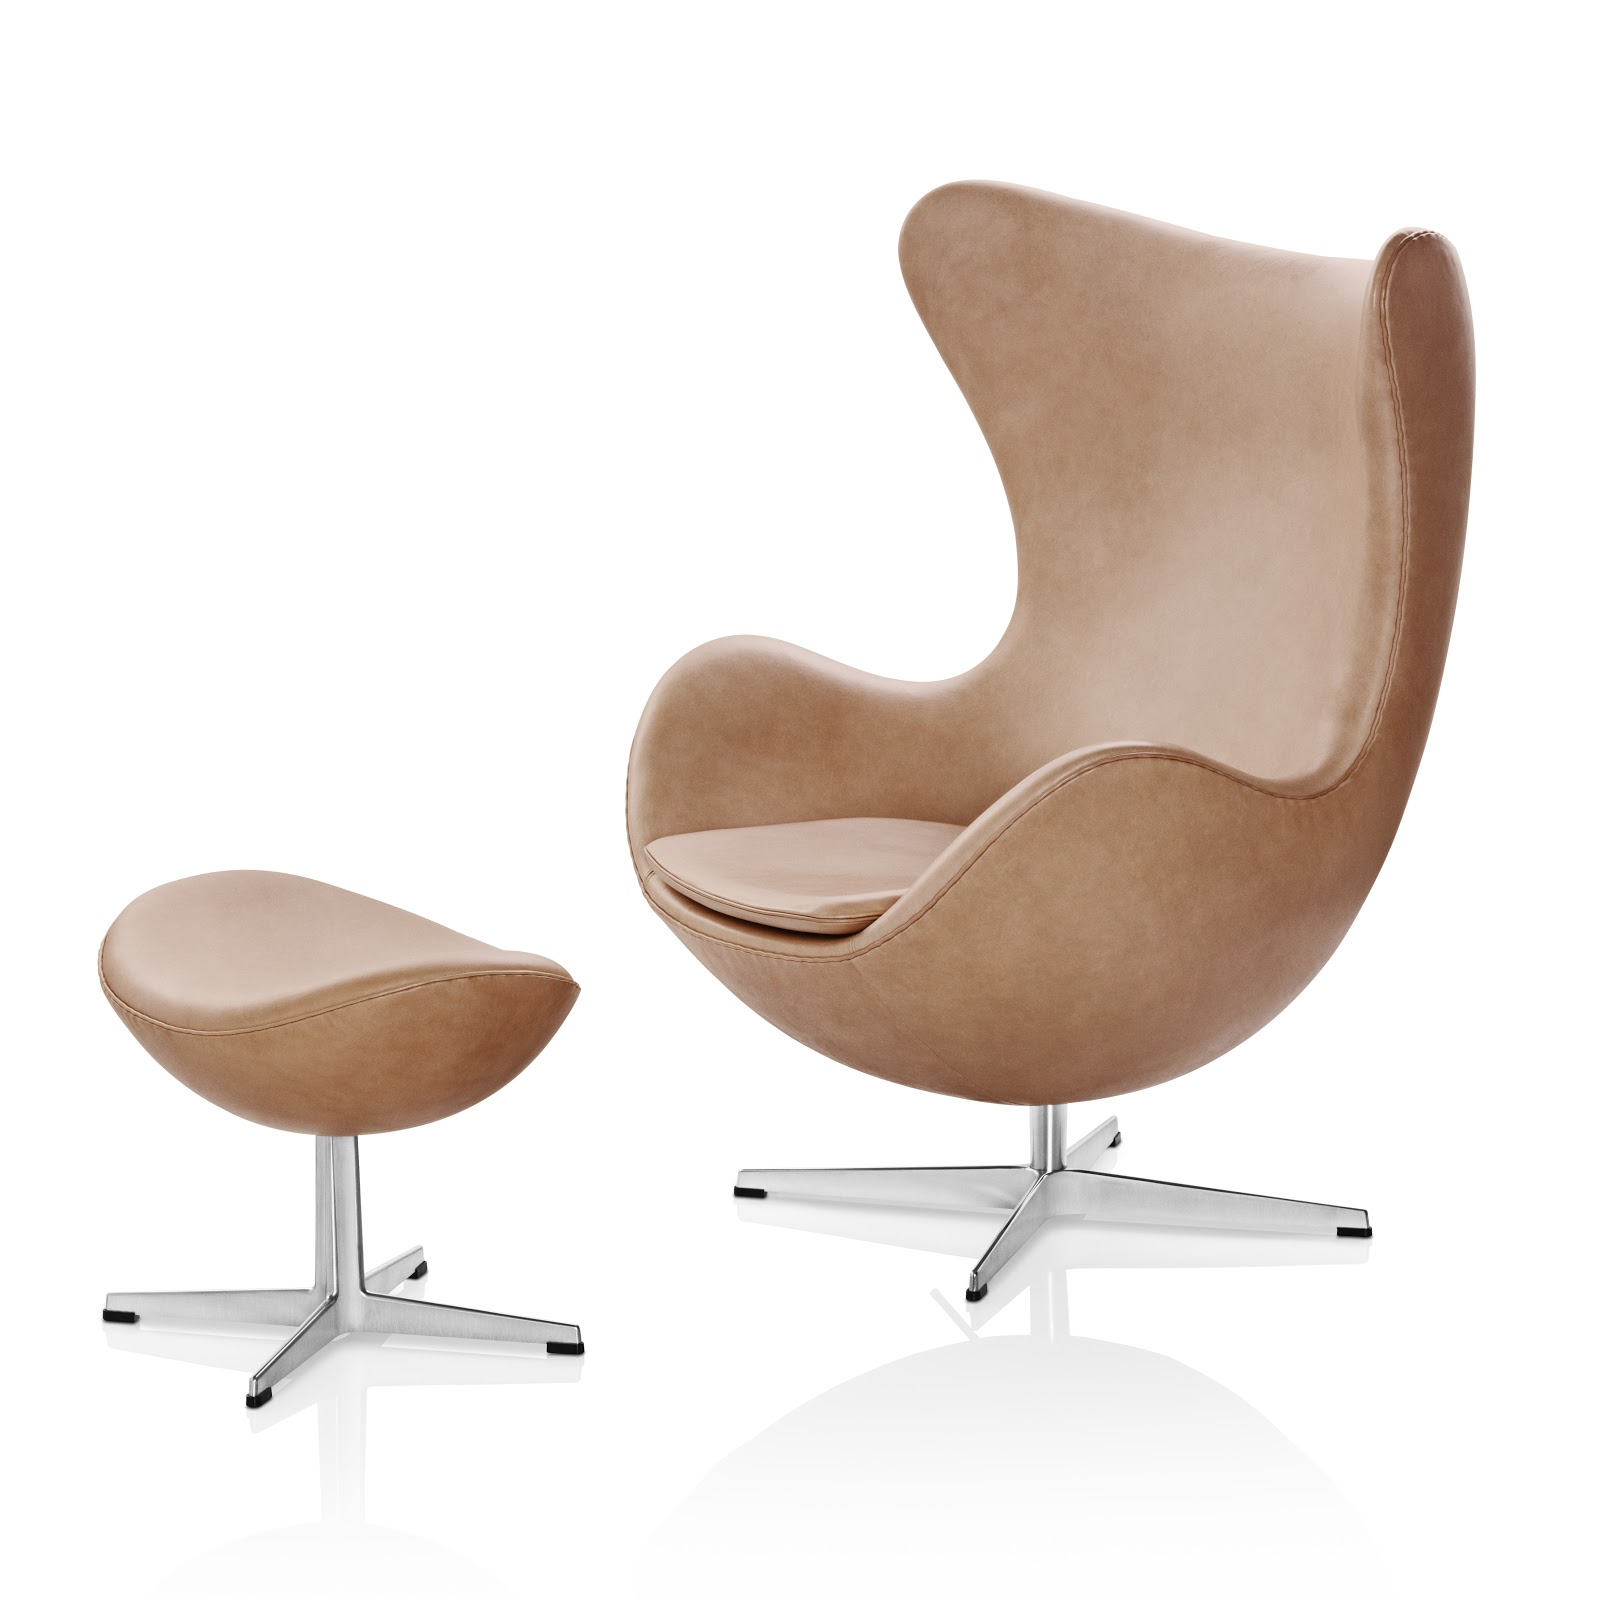 jacobsen egg chair leather fishing boat rustic by arne